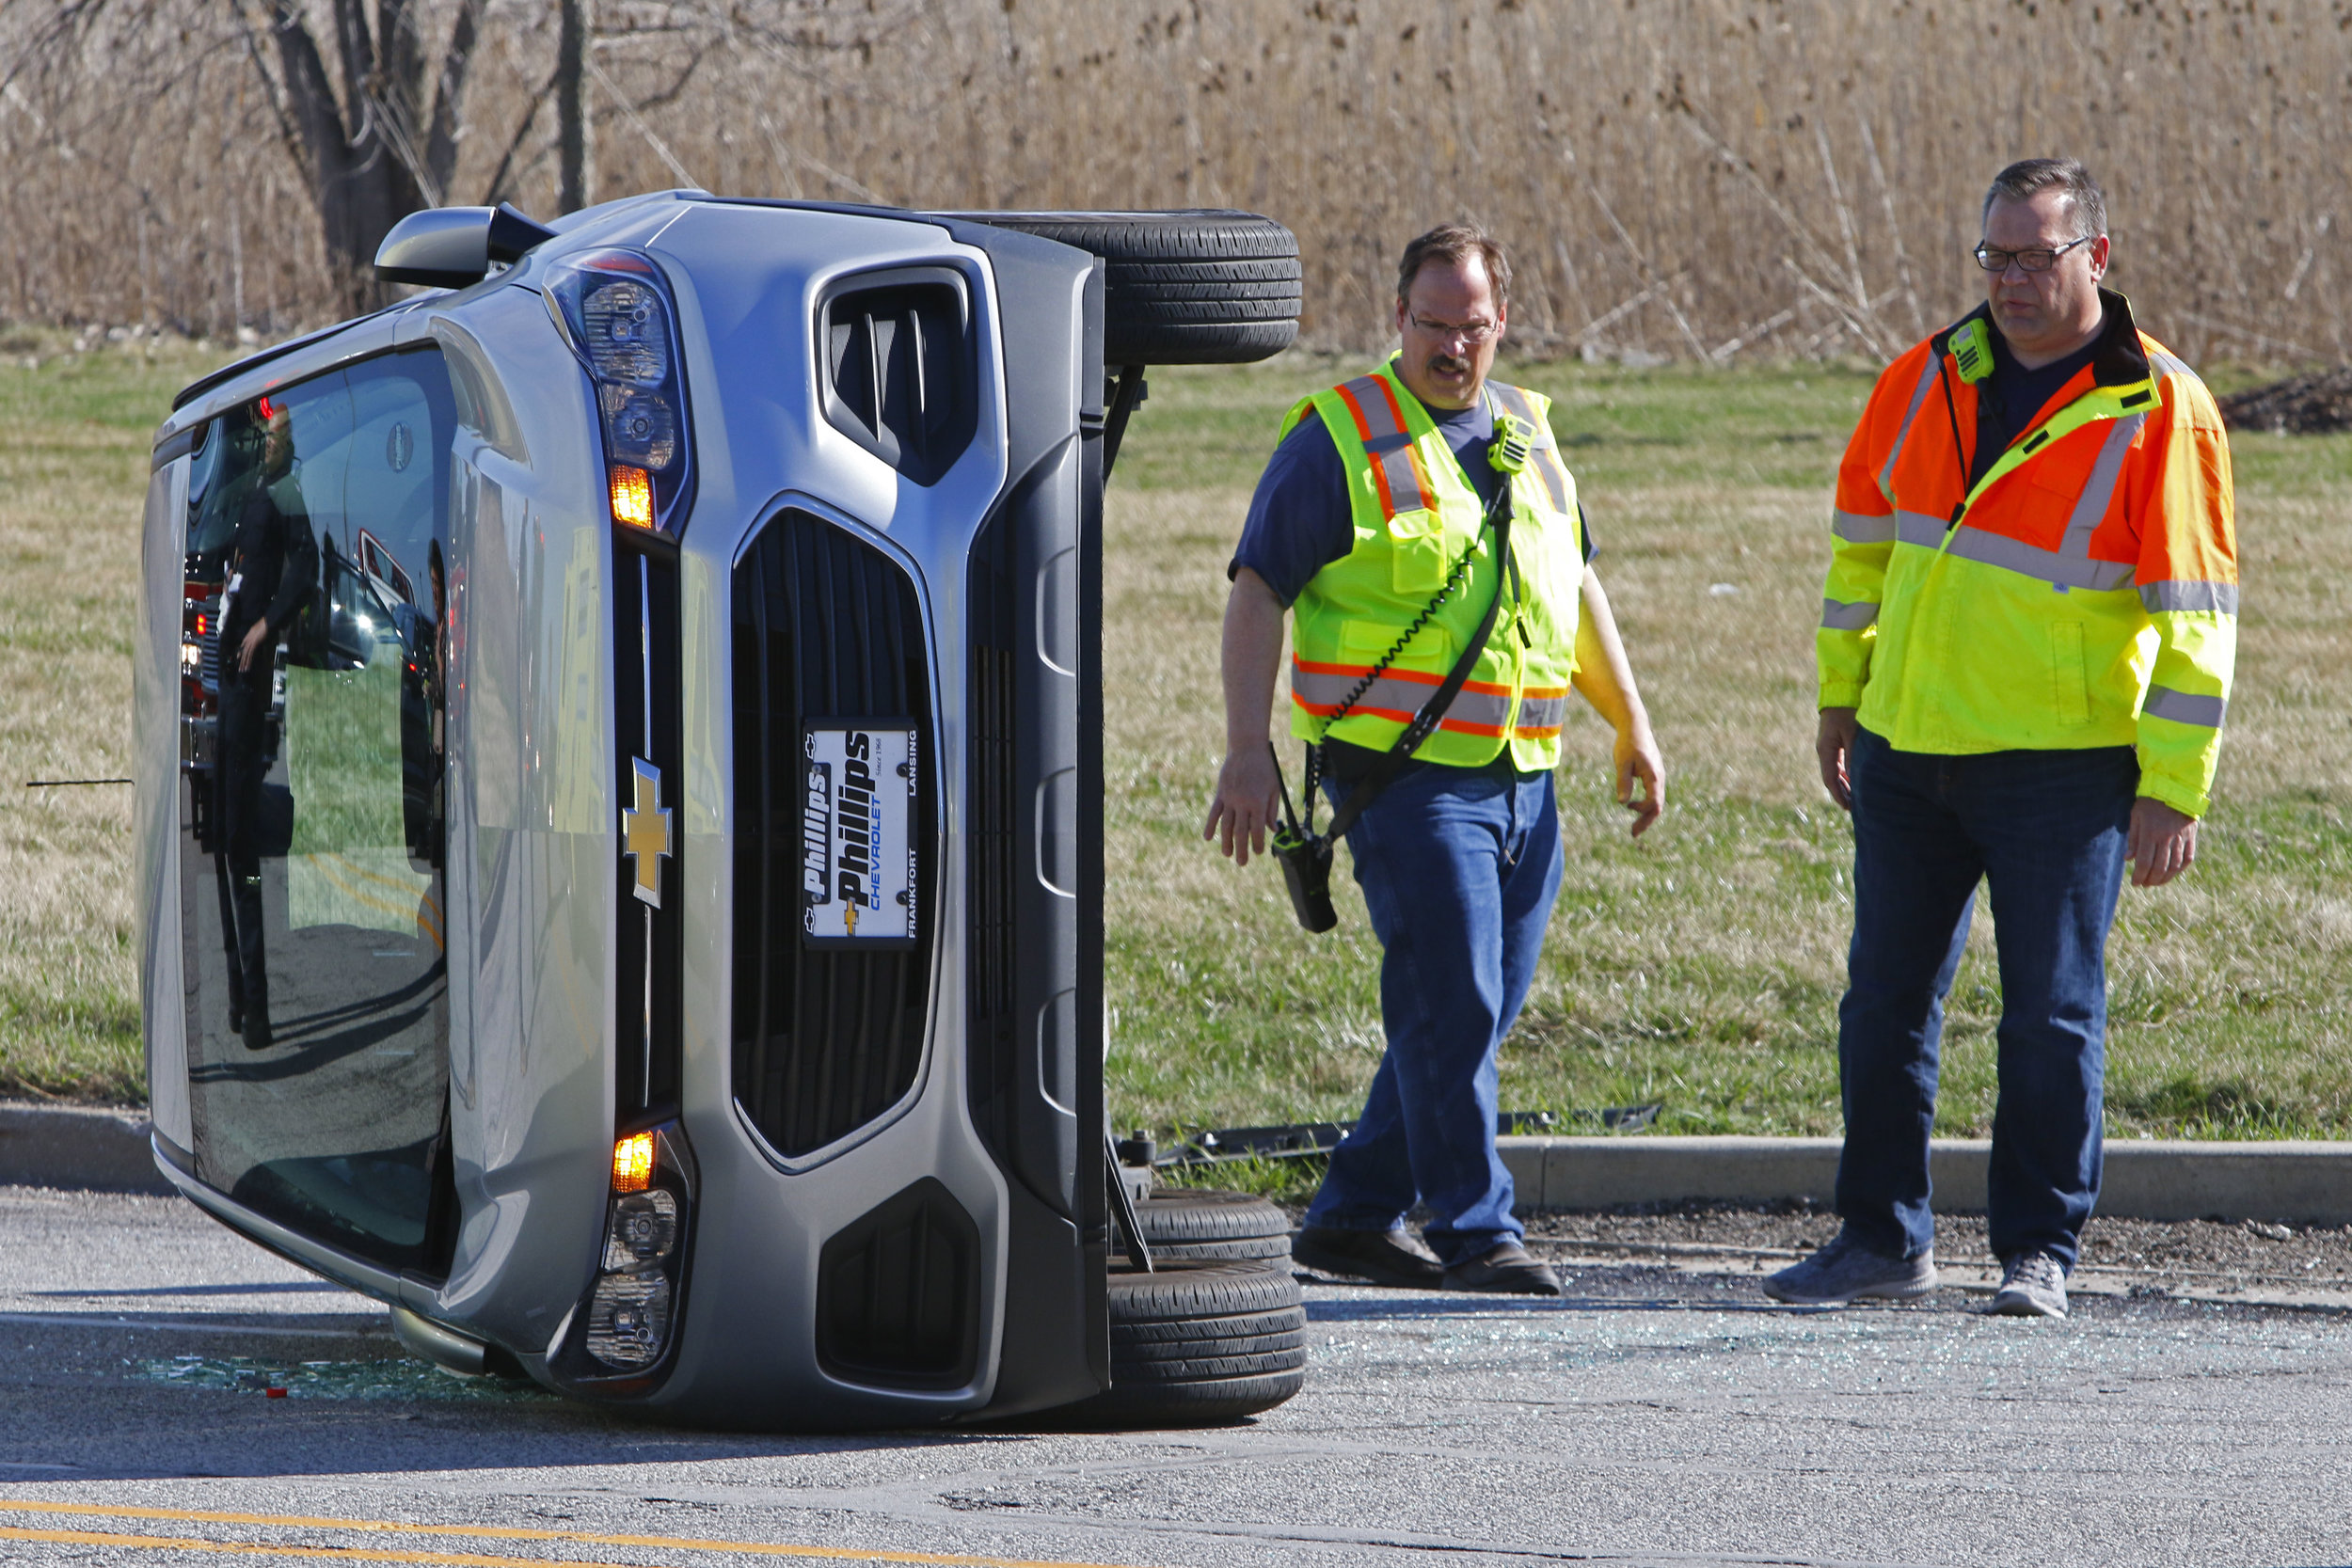 First responders work a scene on 45th Street in Munster where a silver car ended up on its side.